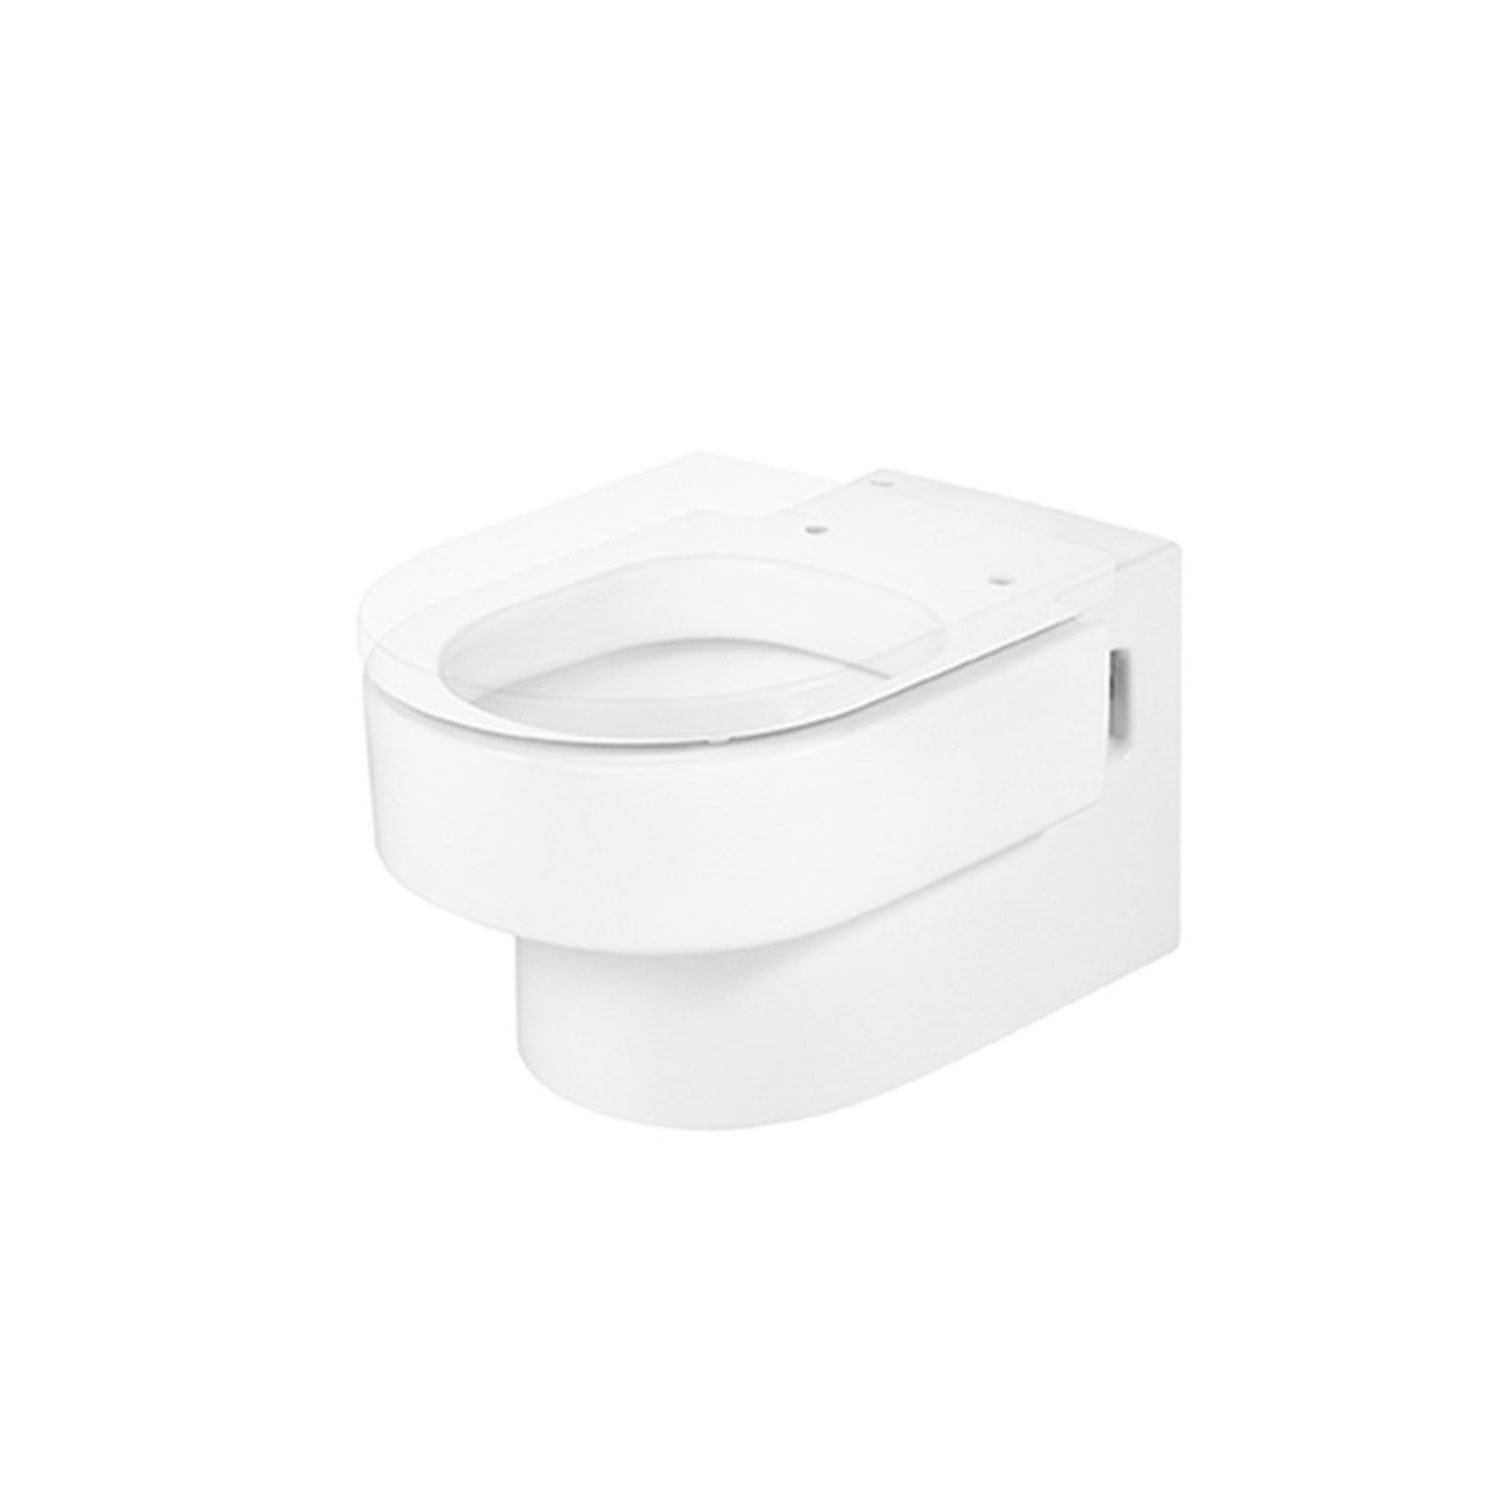 Roca Happening Wall Hung Toilet, 560mm Projection, Soft Close Seat